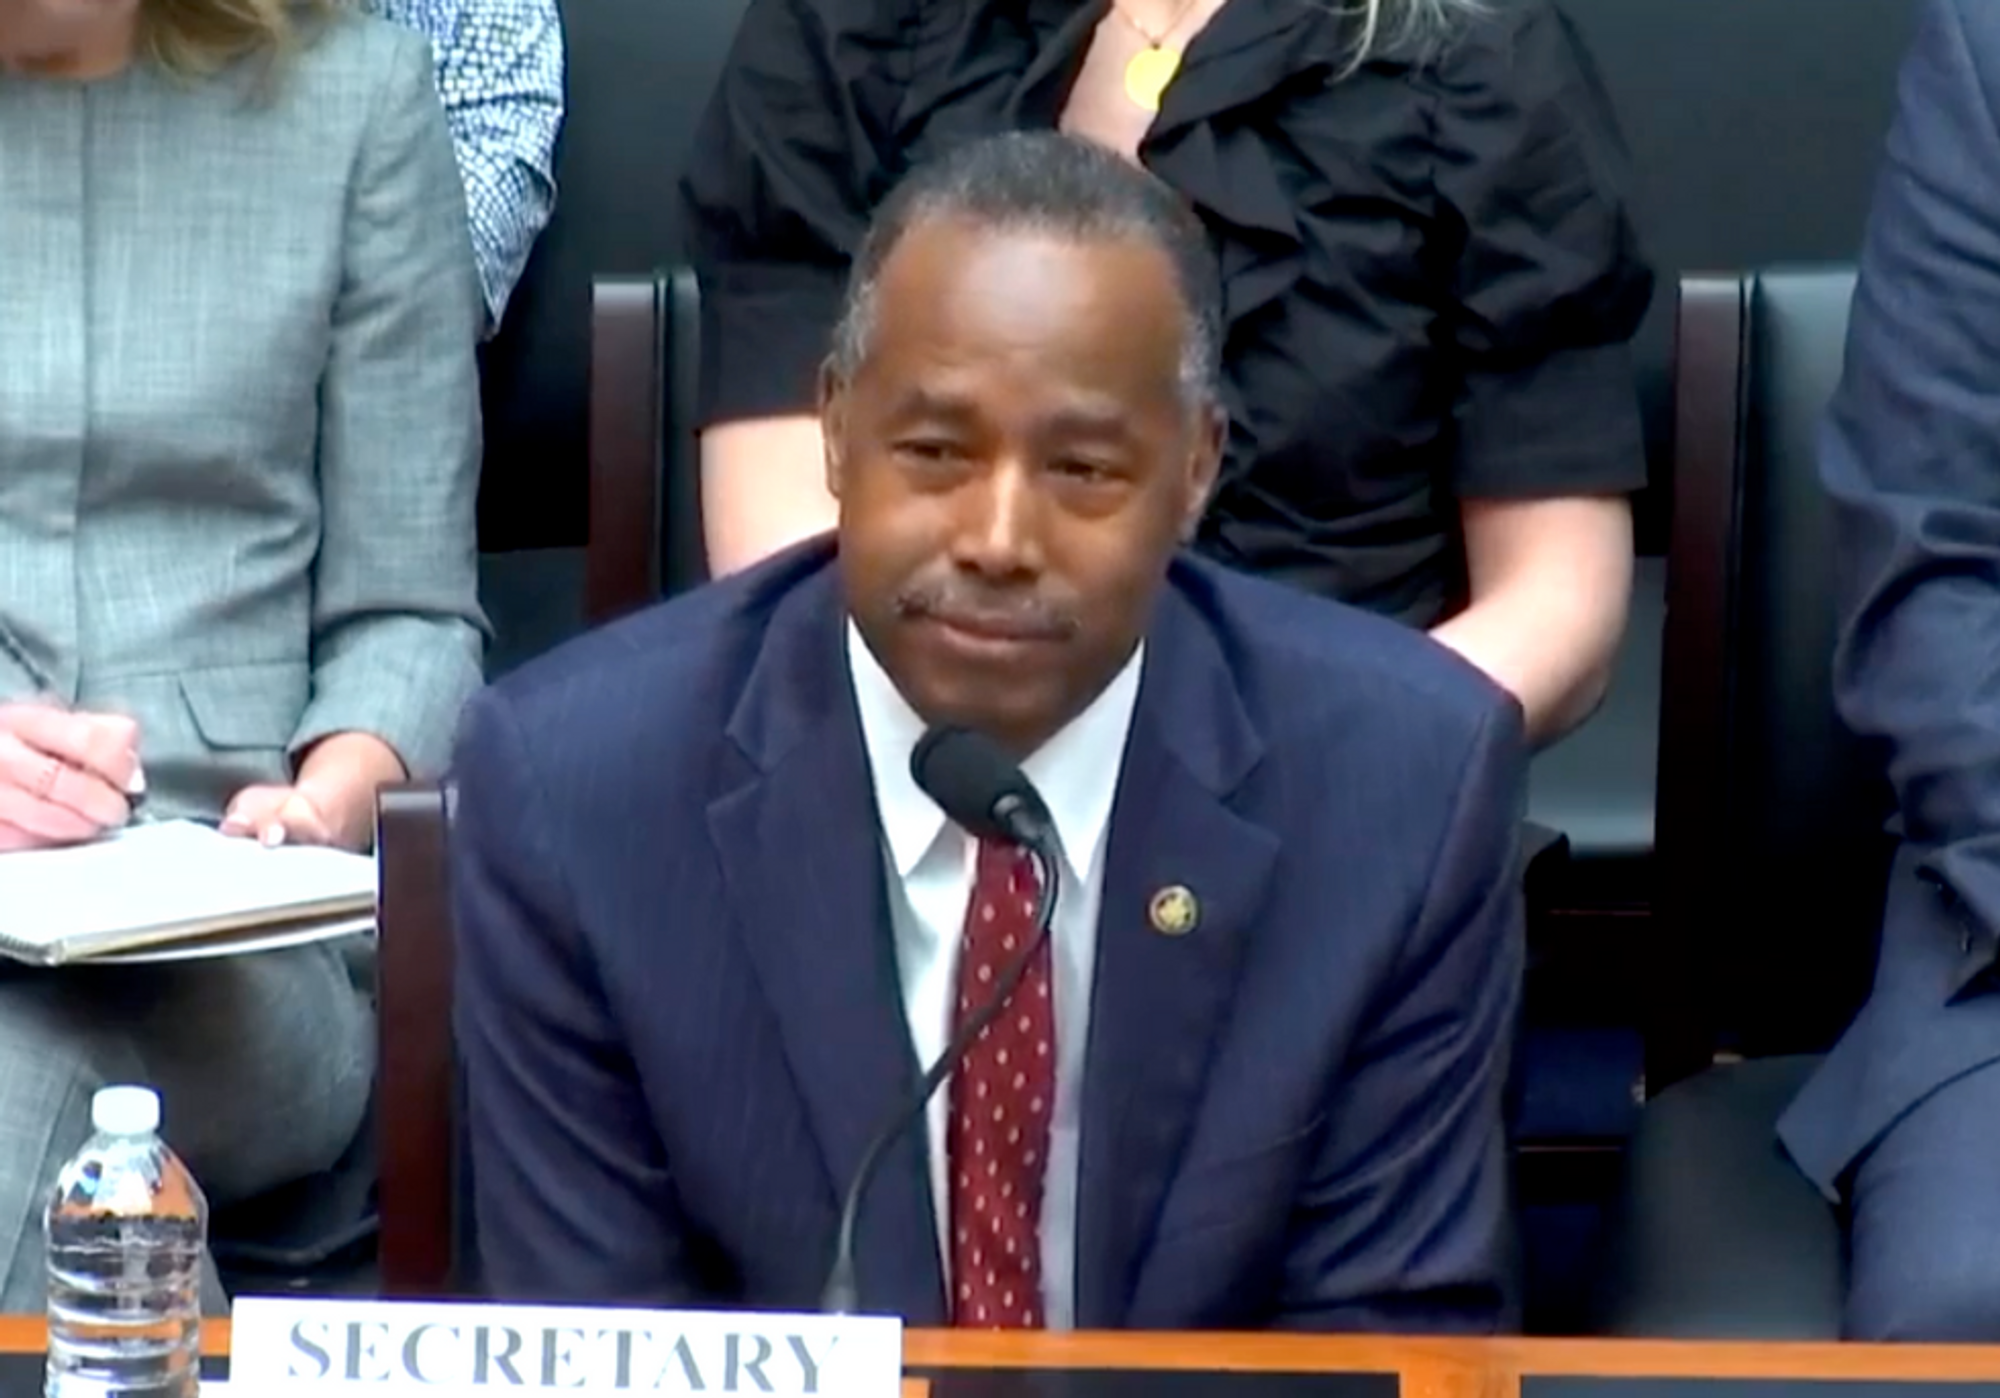 Emails show Ben Carson lied when he claimed that HUD hadn't changed policy on DACA recipients